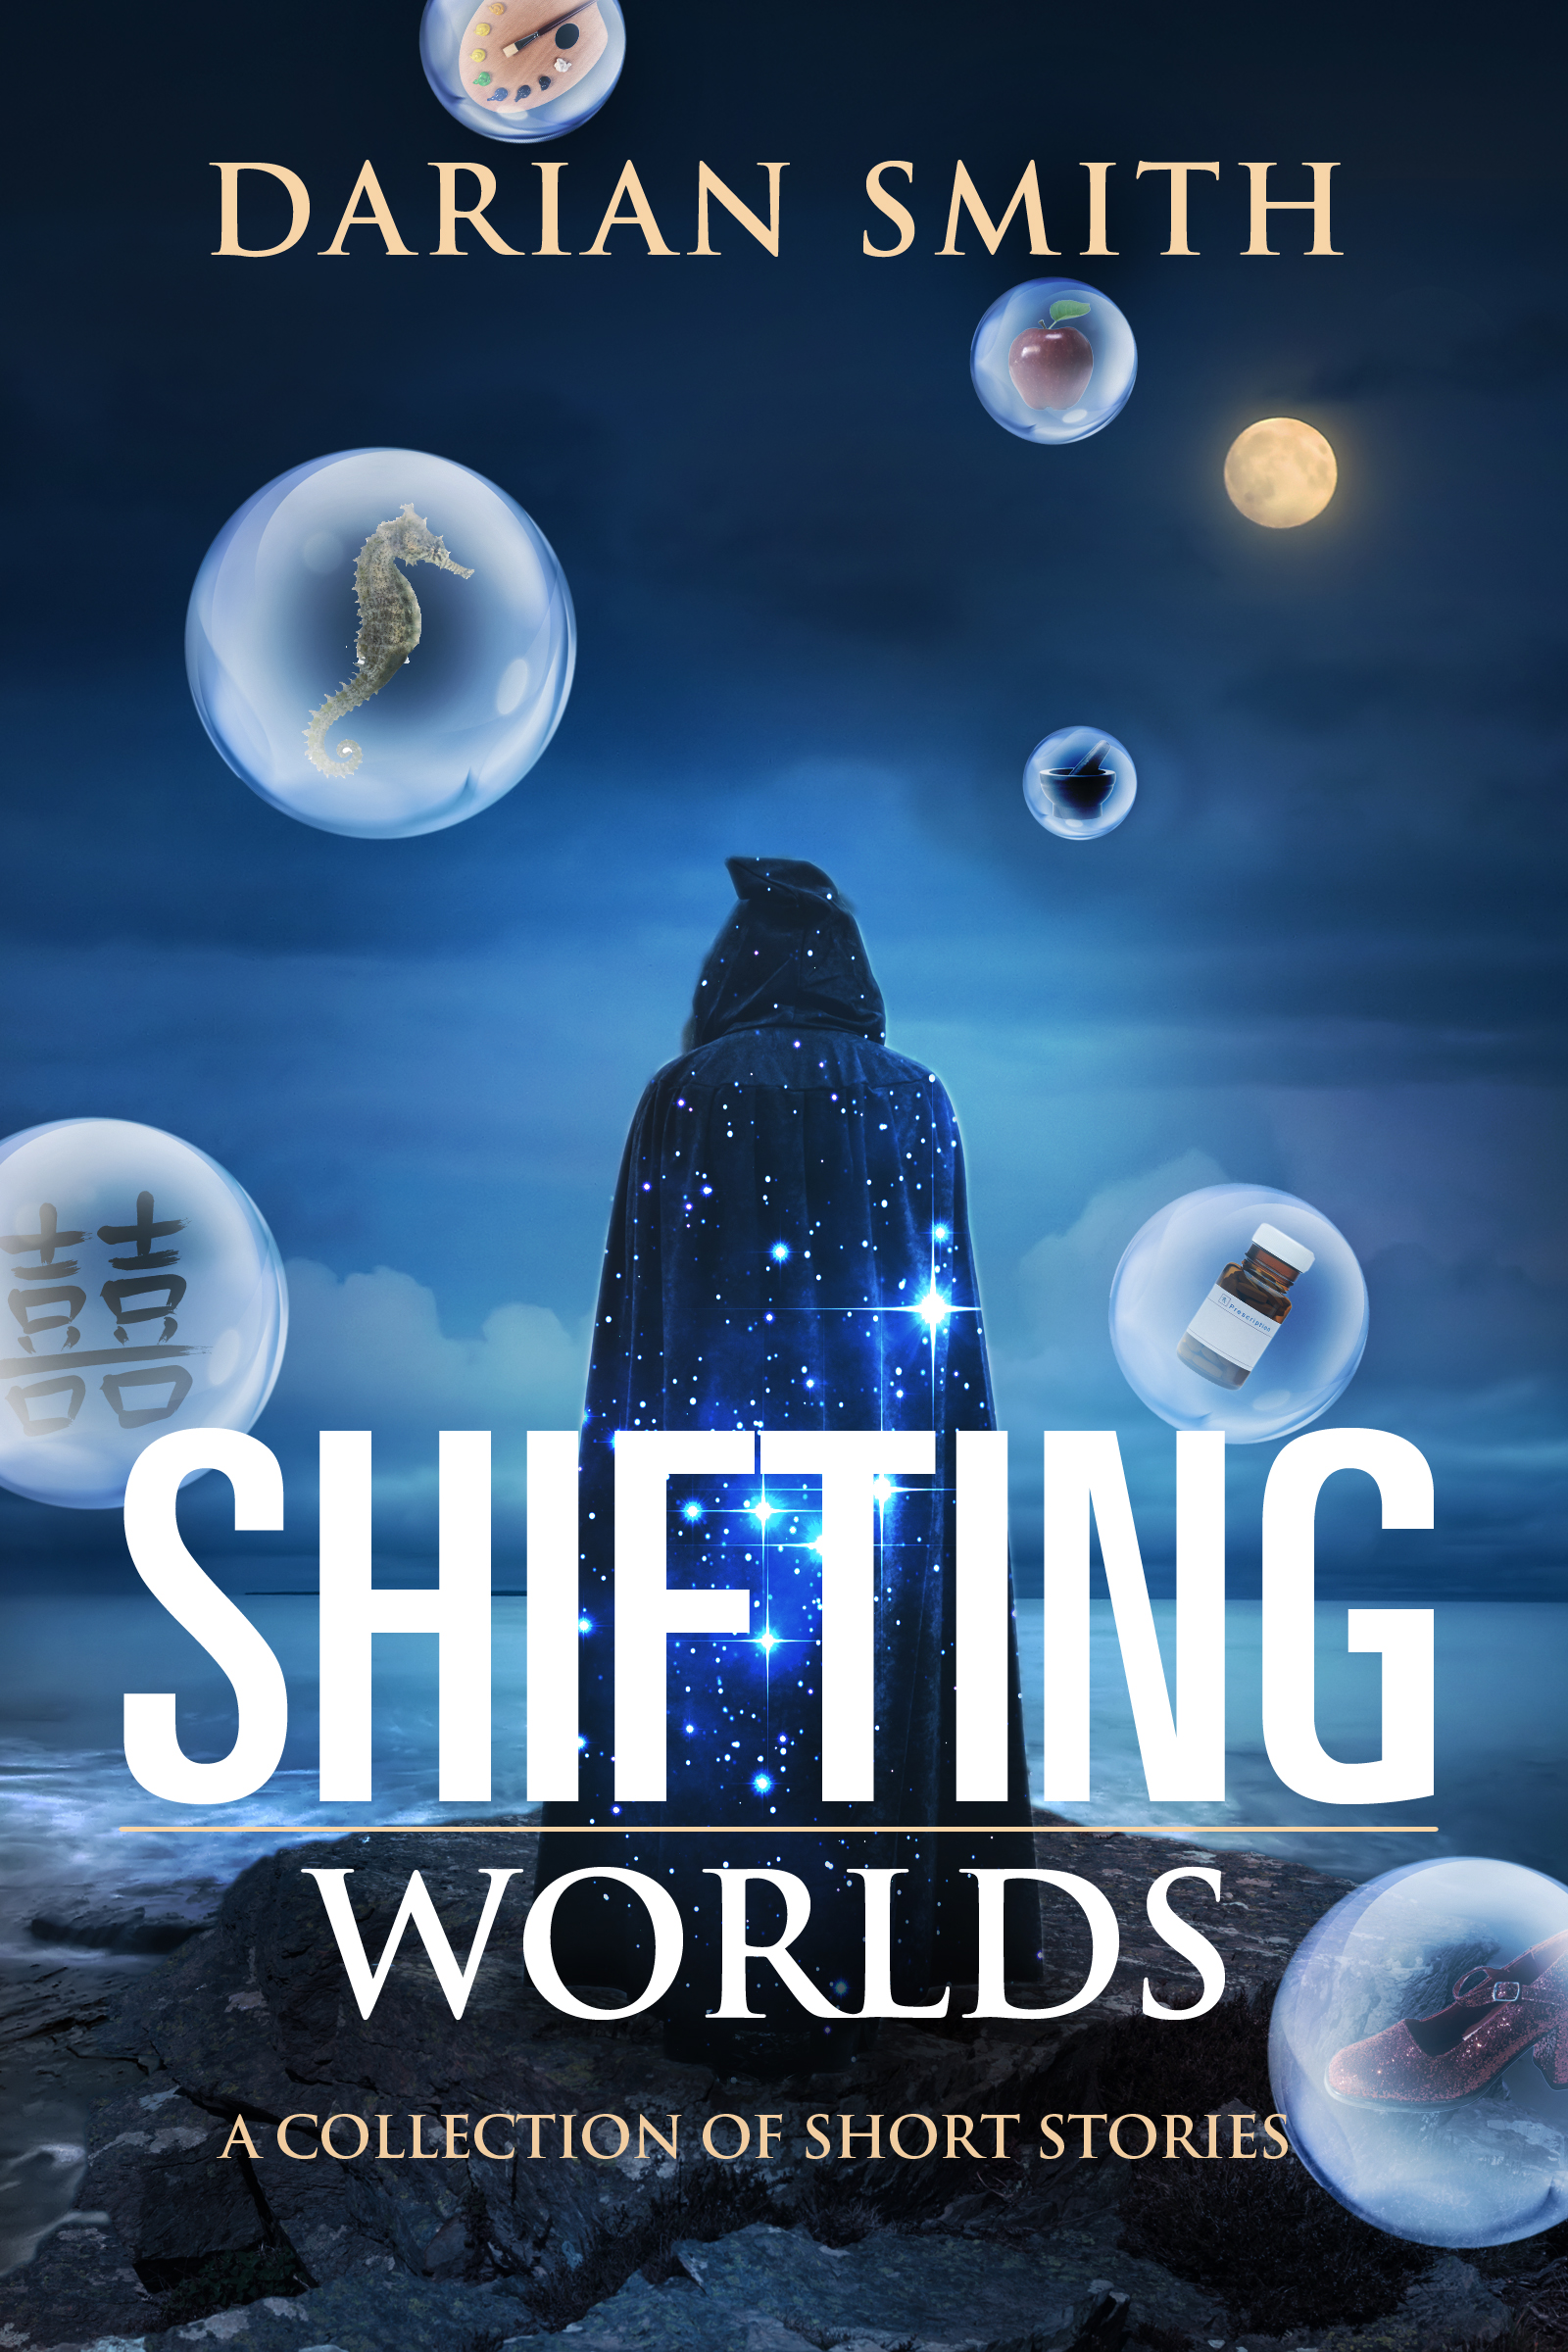 """Shifting Worlds"" is a collection of 16 stories spanning the worlds of fantasy, sci-fi, and literary fiction. Includes prize winning and brand new stories. Foreward by Jennifer Fallon, who says it ""never fails to entertain and surprise."""